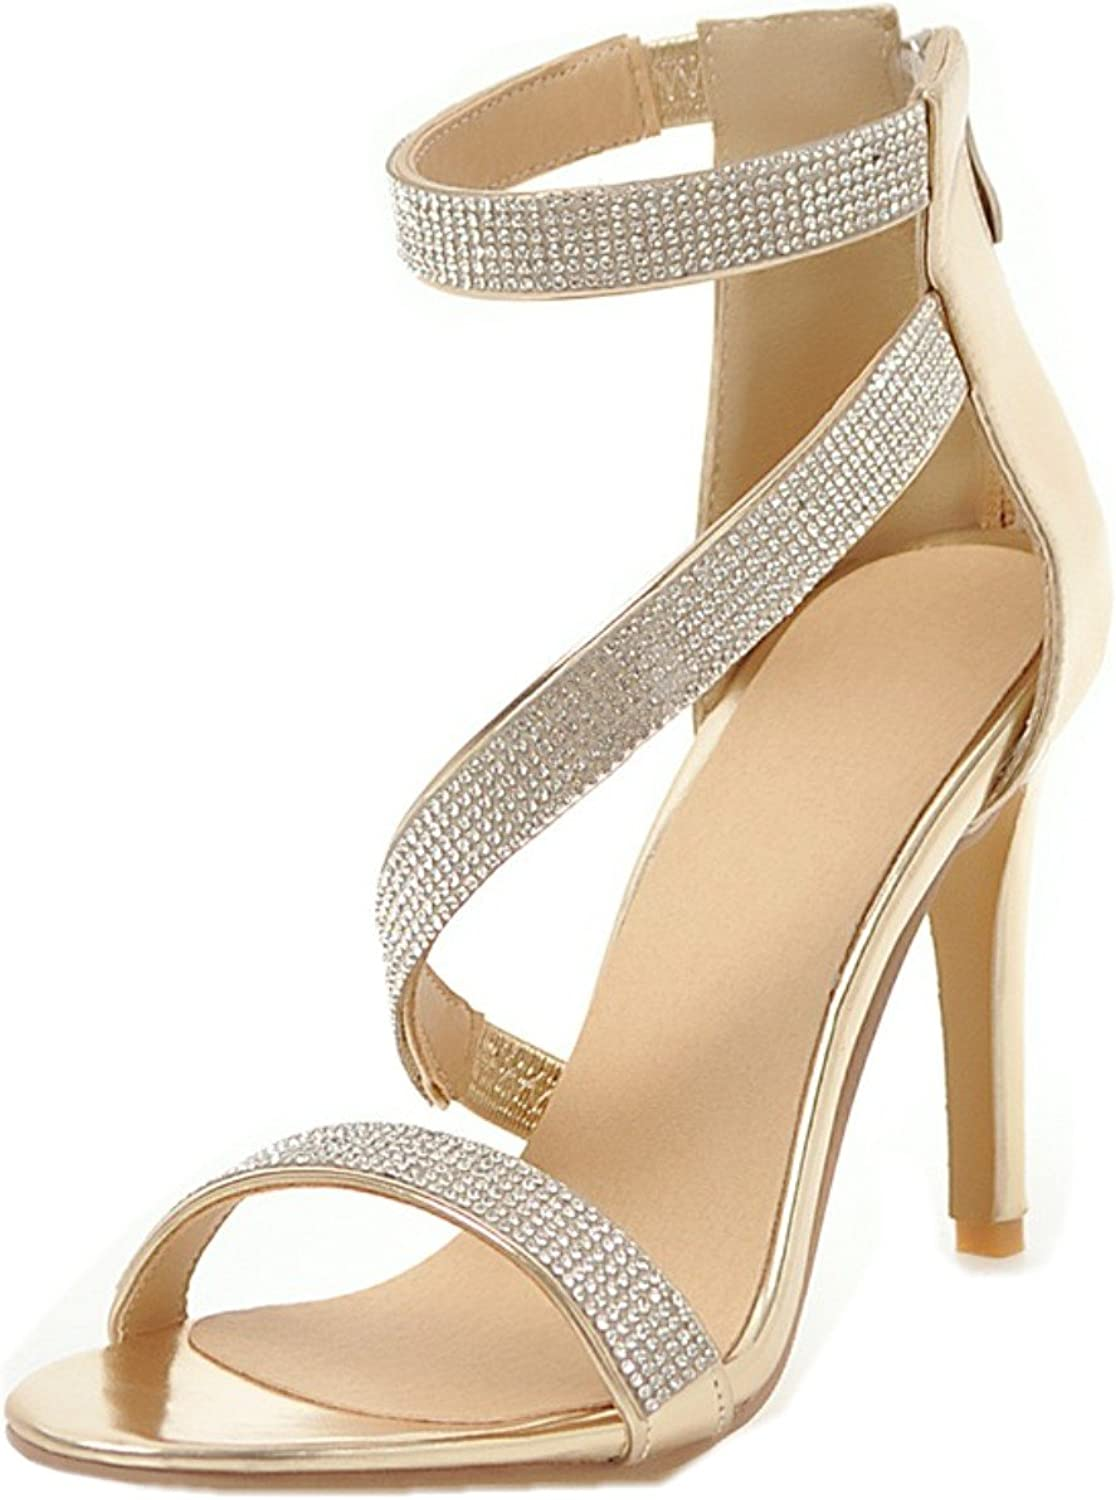 Rongzhi Womens Rhinestone High Heels Heeled Sandals Ankle Strap Stilettos Dress Party shoes Open Toe